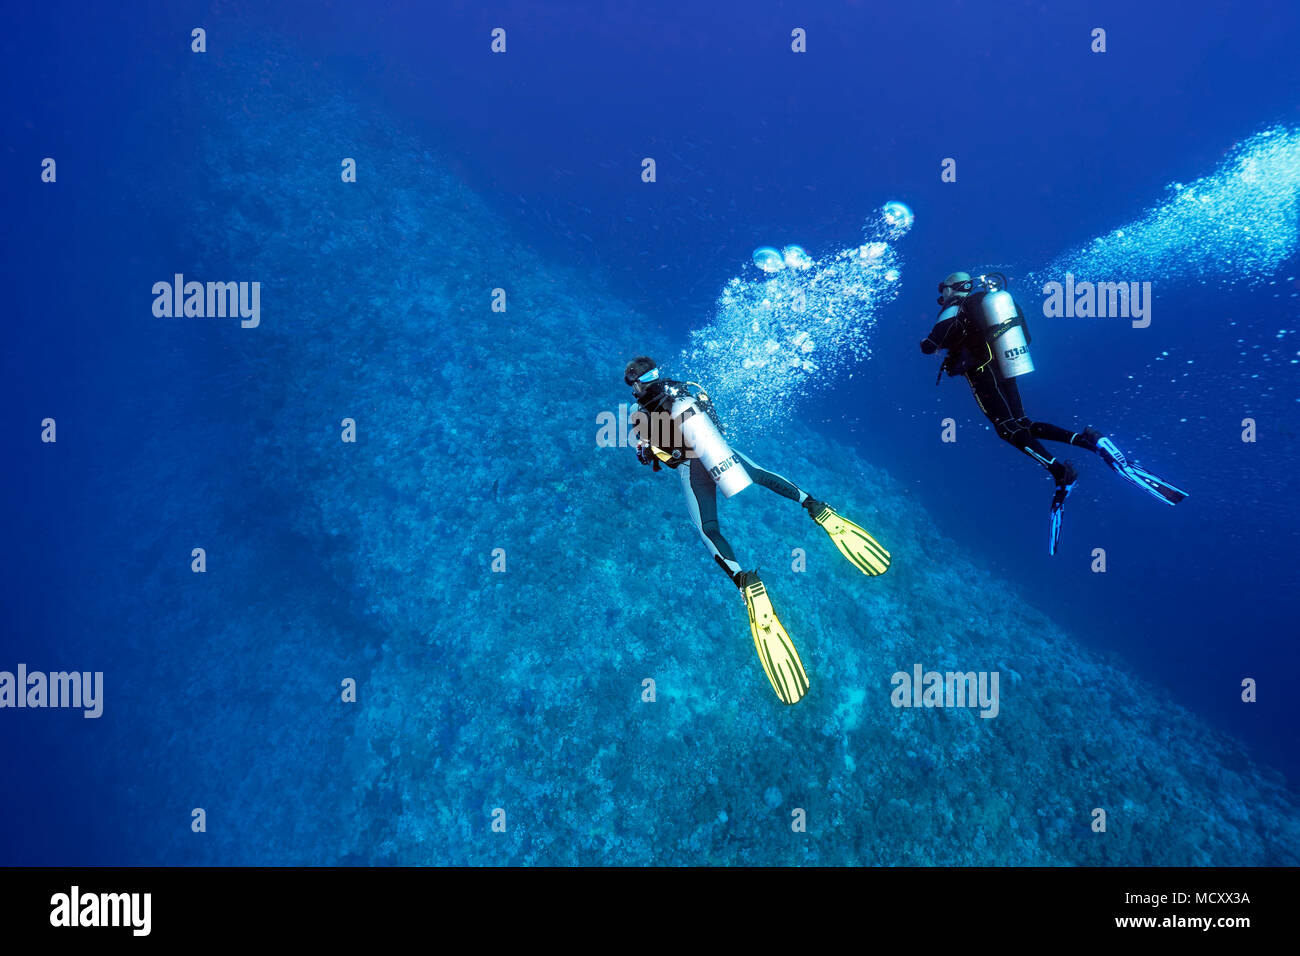 Two divers diving over coral reef, deep diving, Elphinstone Reef, North Plateau, Red Sea, Egypt - Stock Image